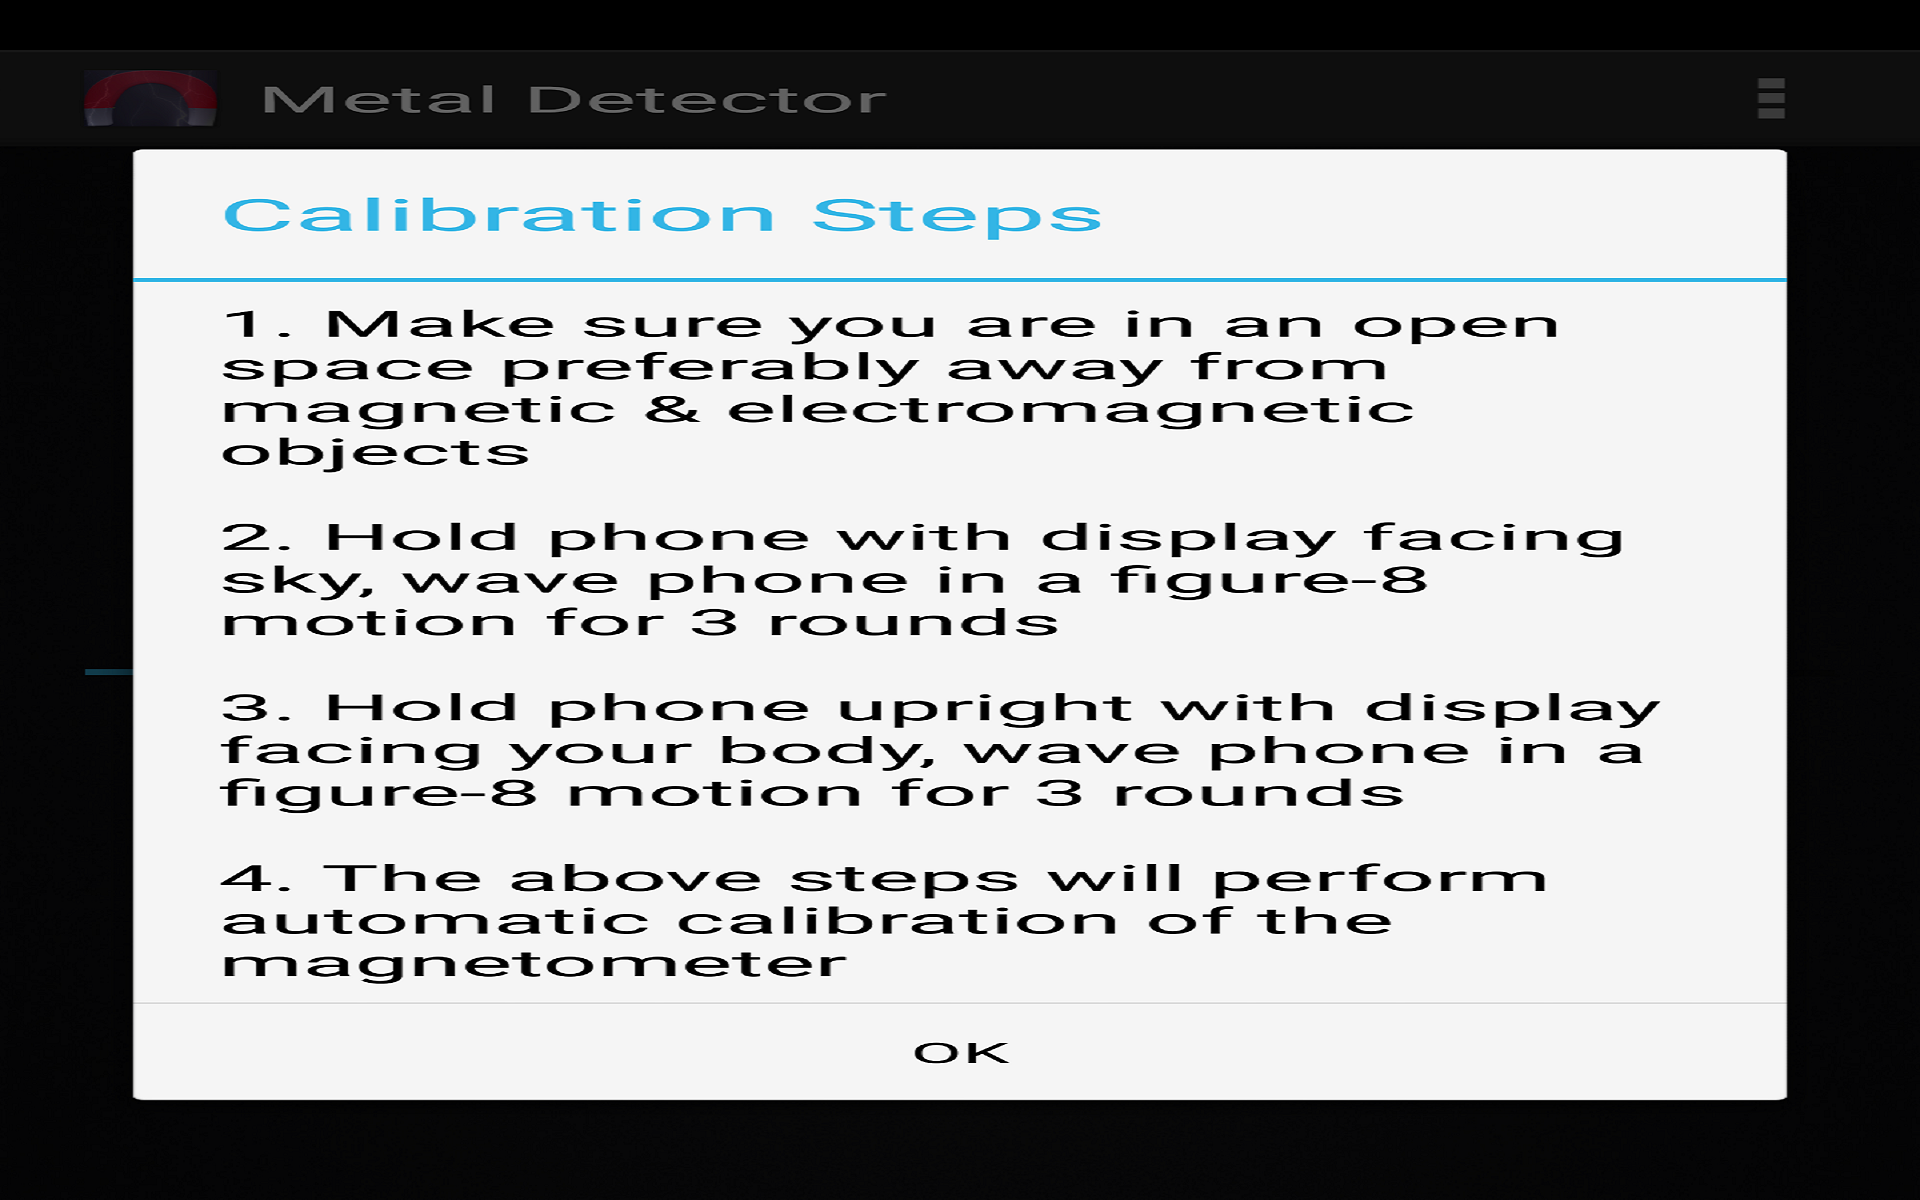 Amazon.com: Metal Detector: Appstore for Android